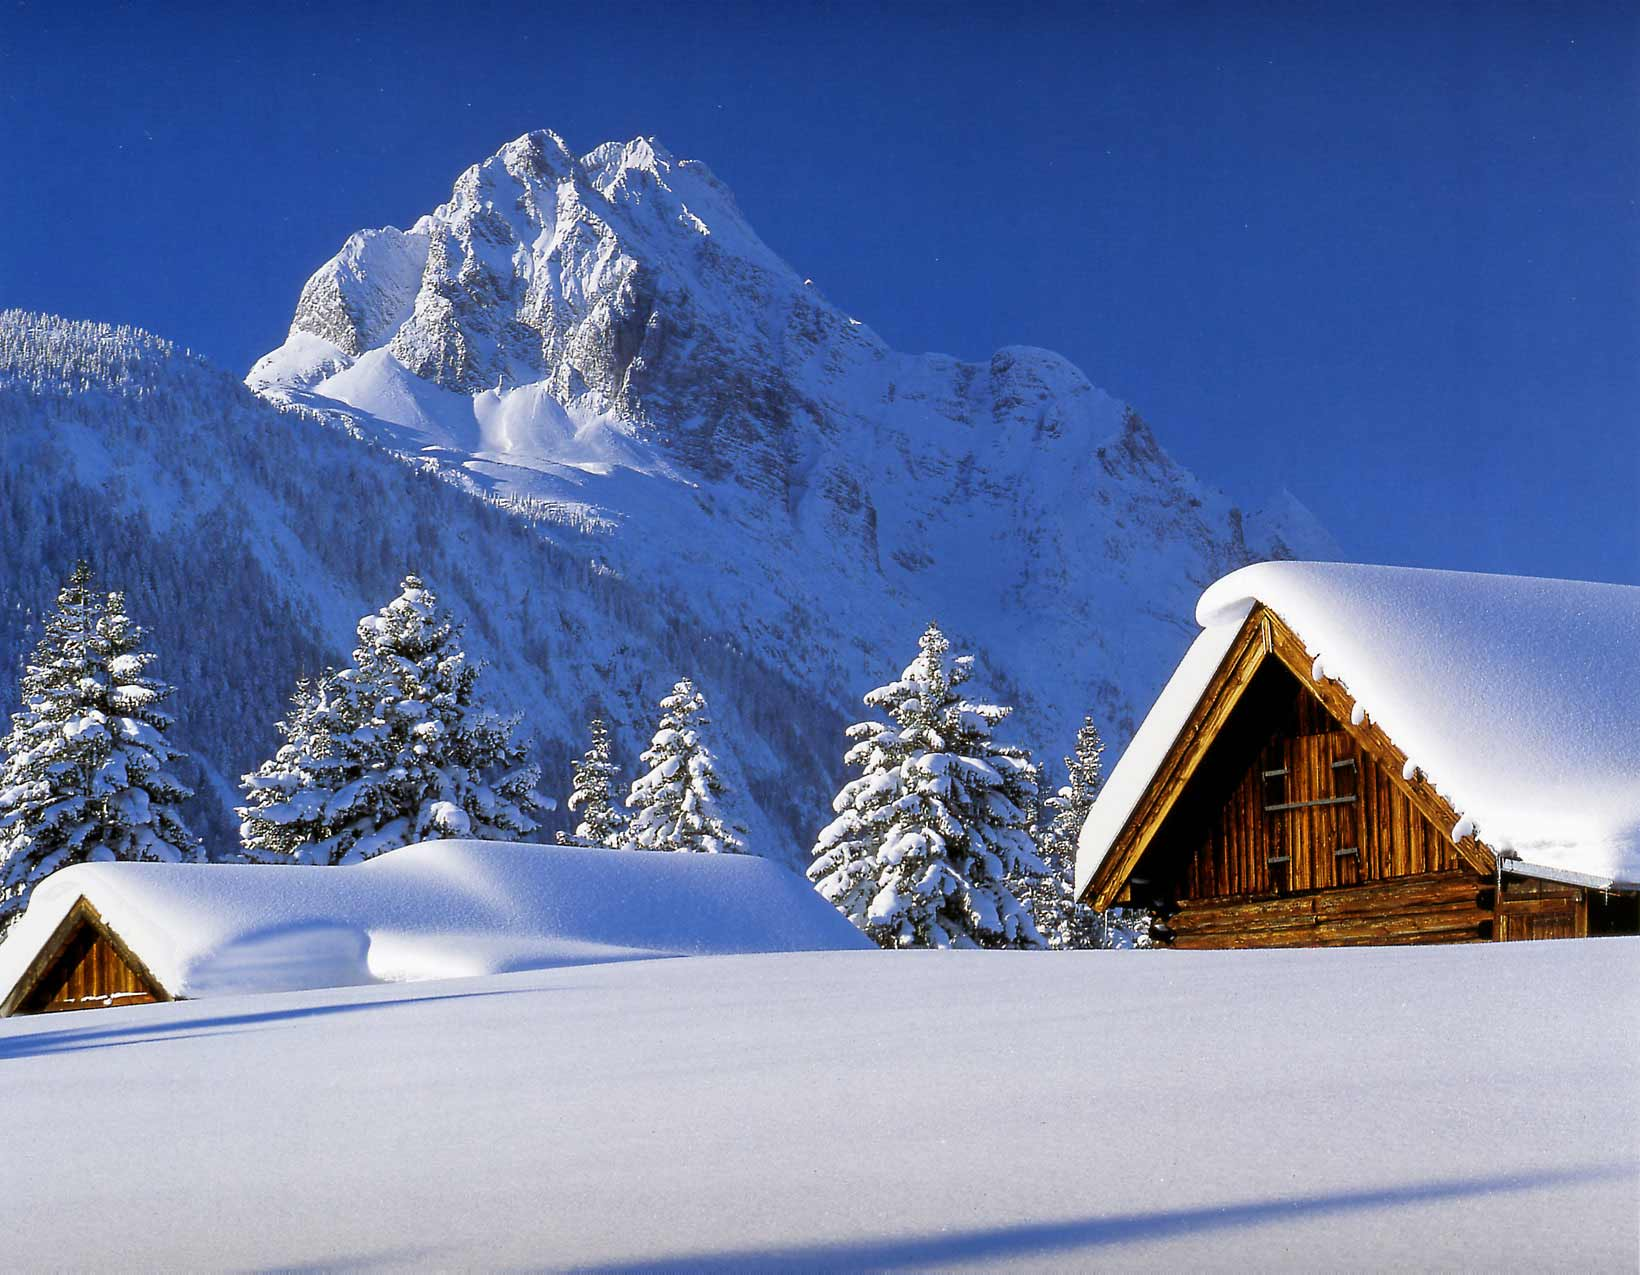 Winter Wallpapers Christmas Winter Wallpapers Download 1640x1275